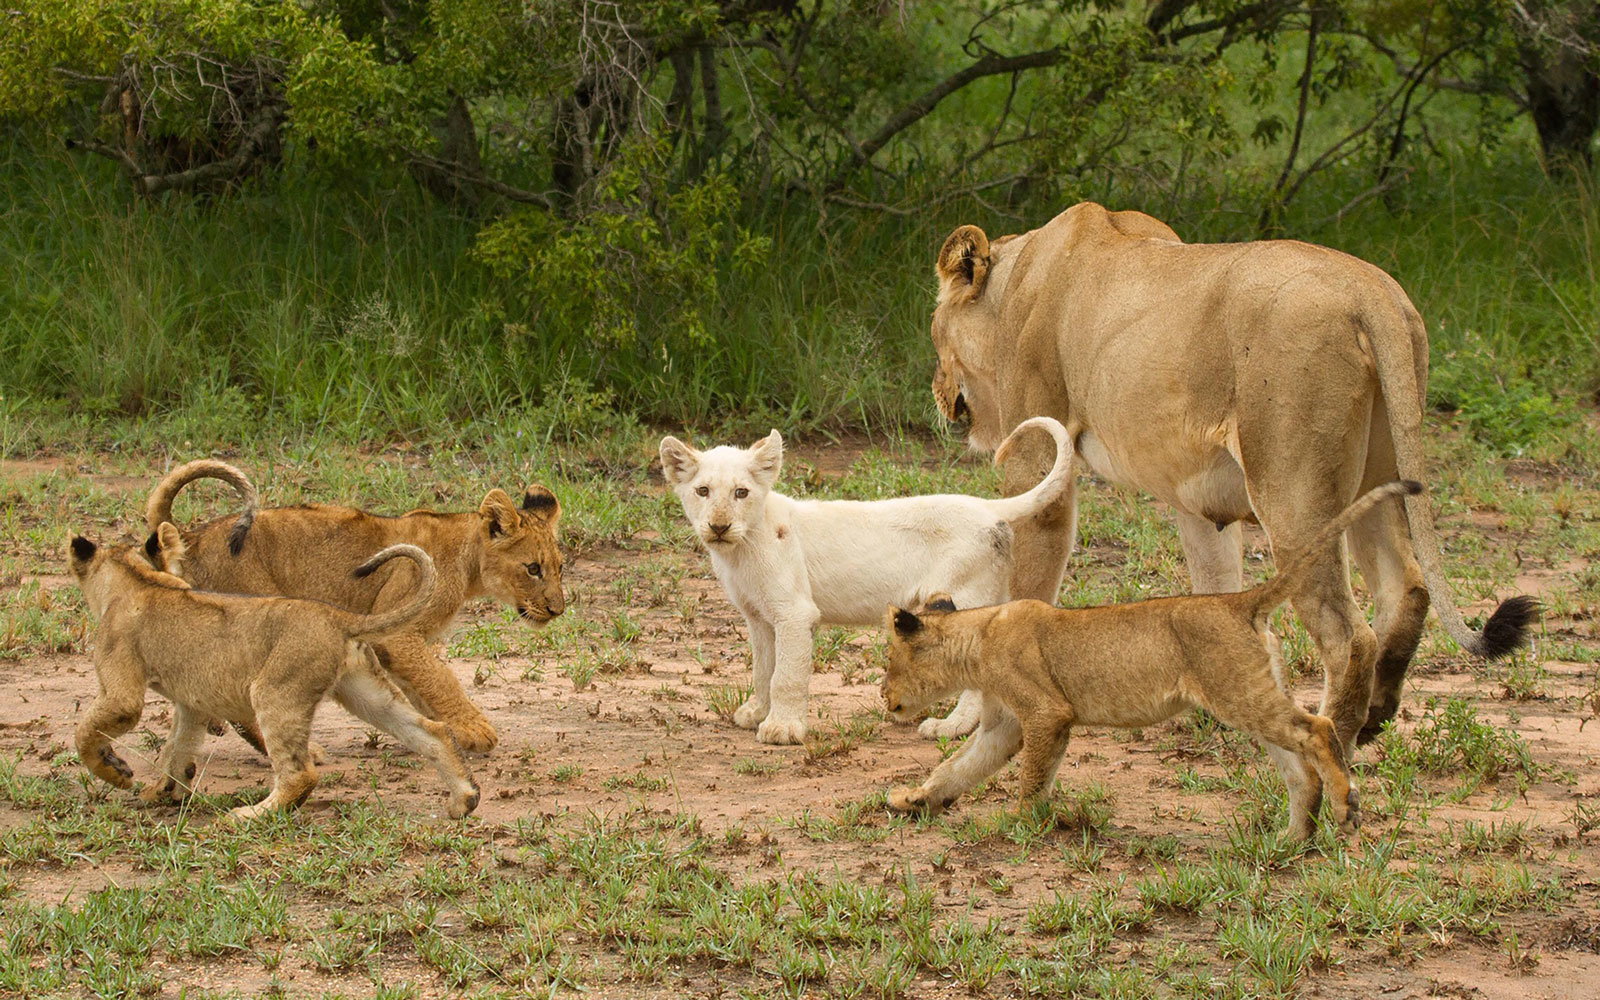 Where to See One of the Only Wild White Lions in the World